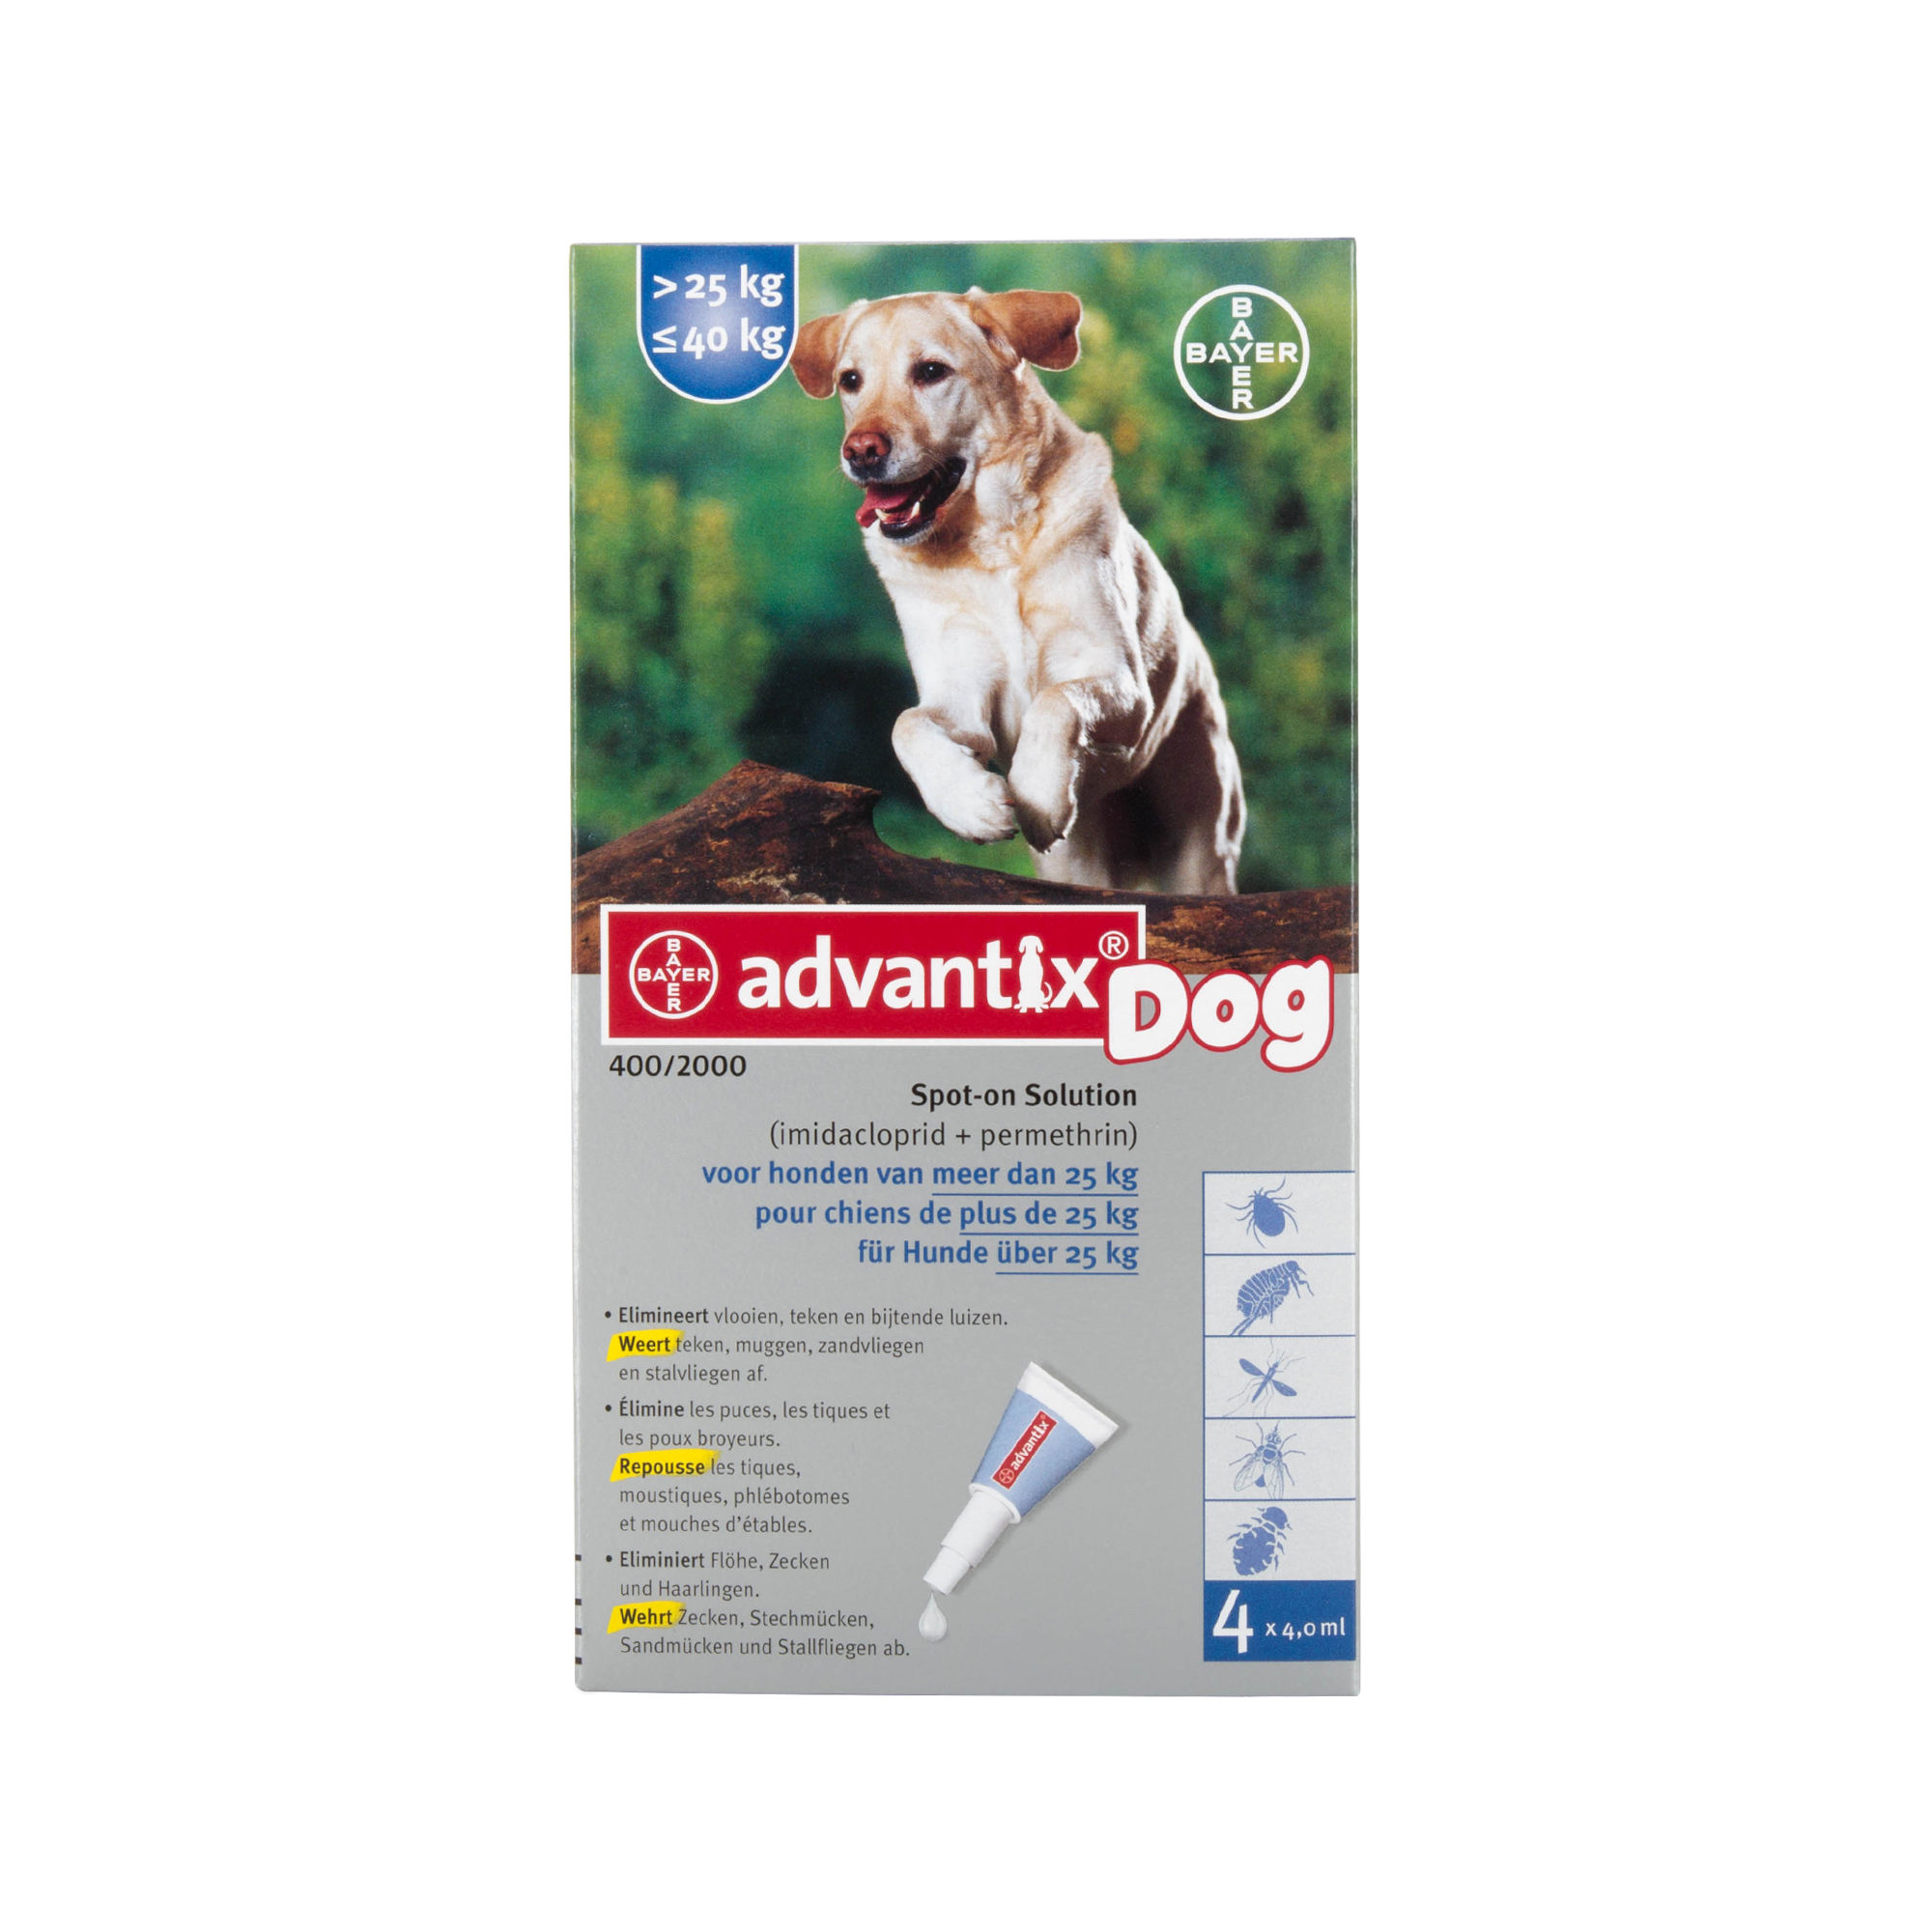 Advantix 400/2000 - 25 - 40 kg - 4 Pipetten